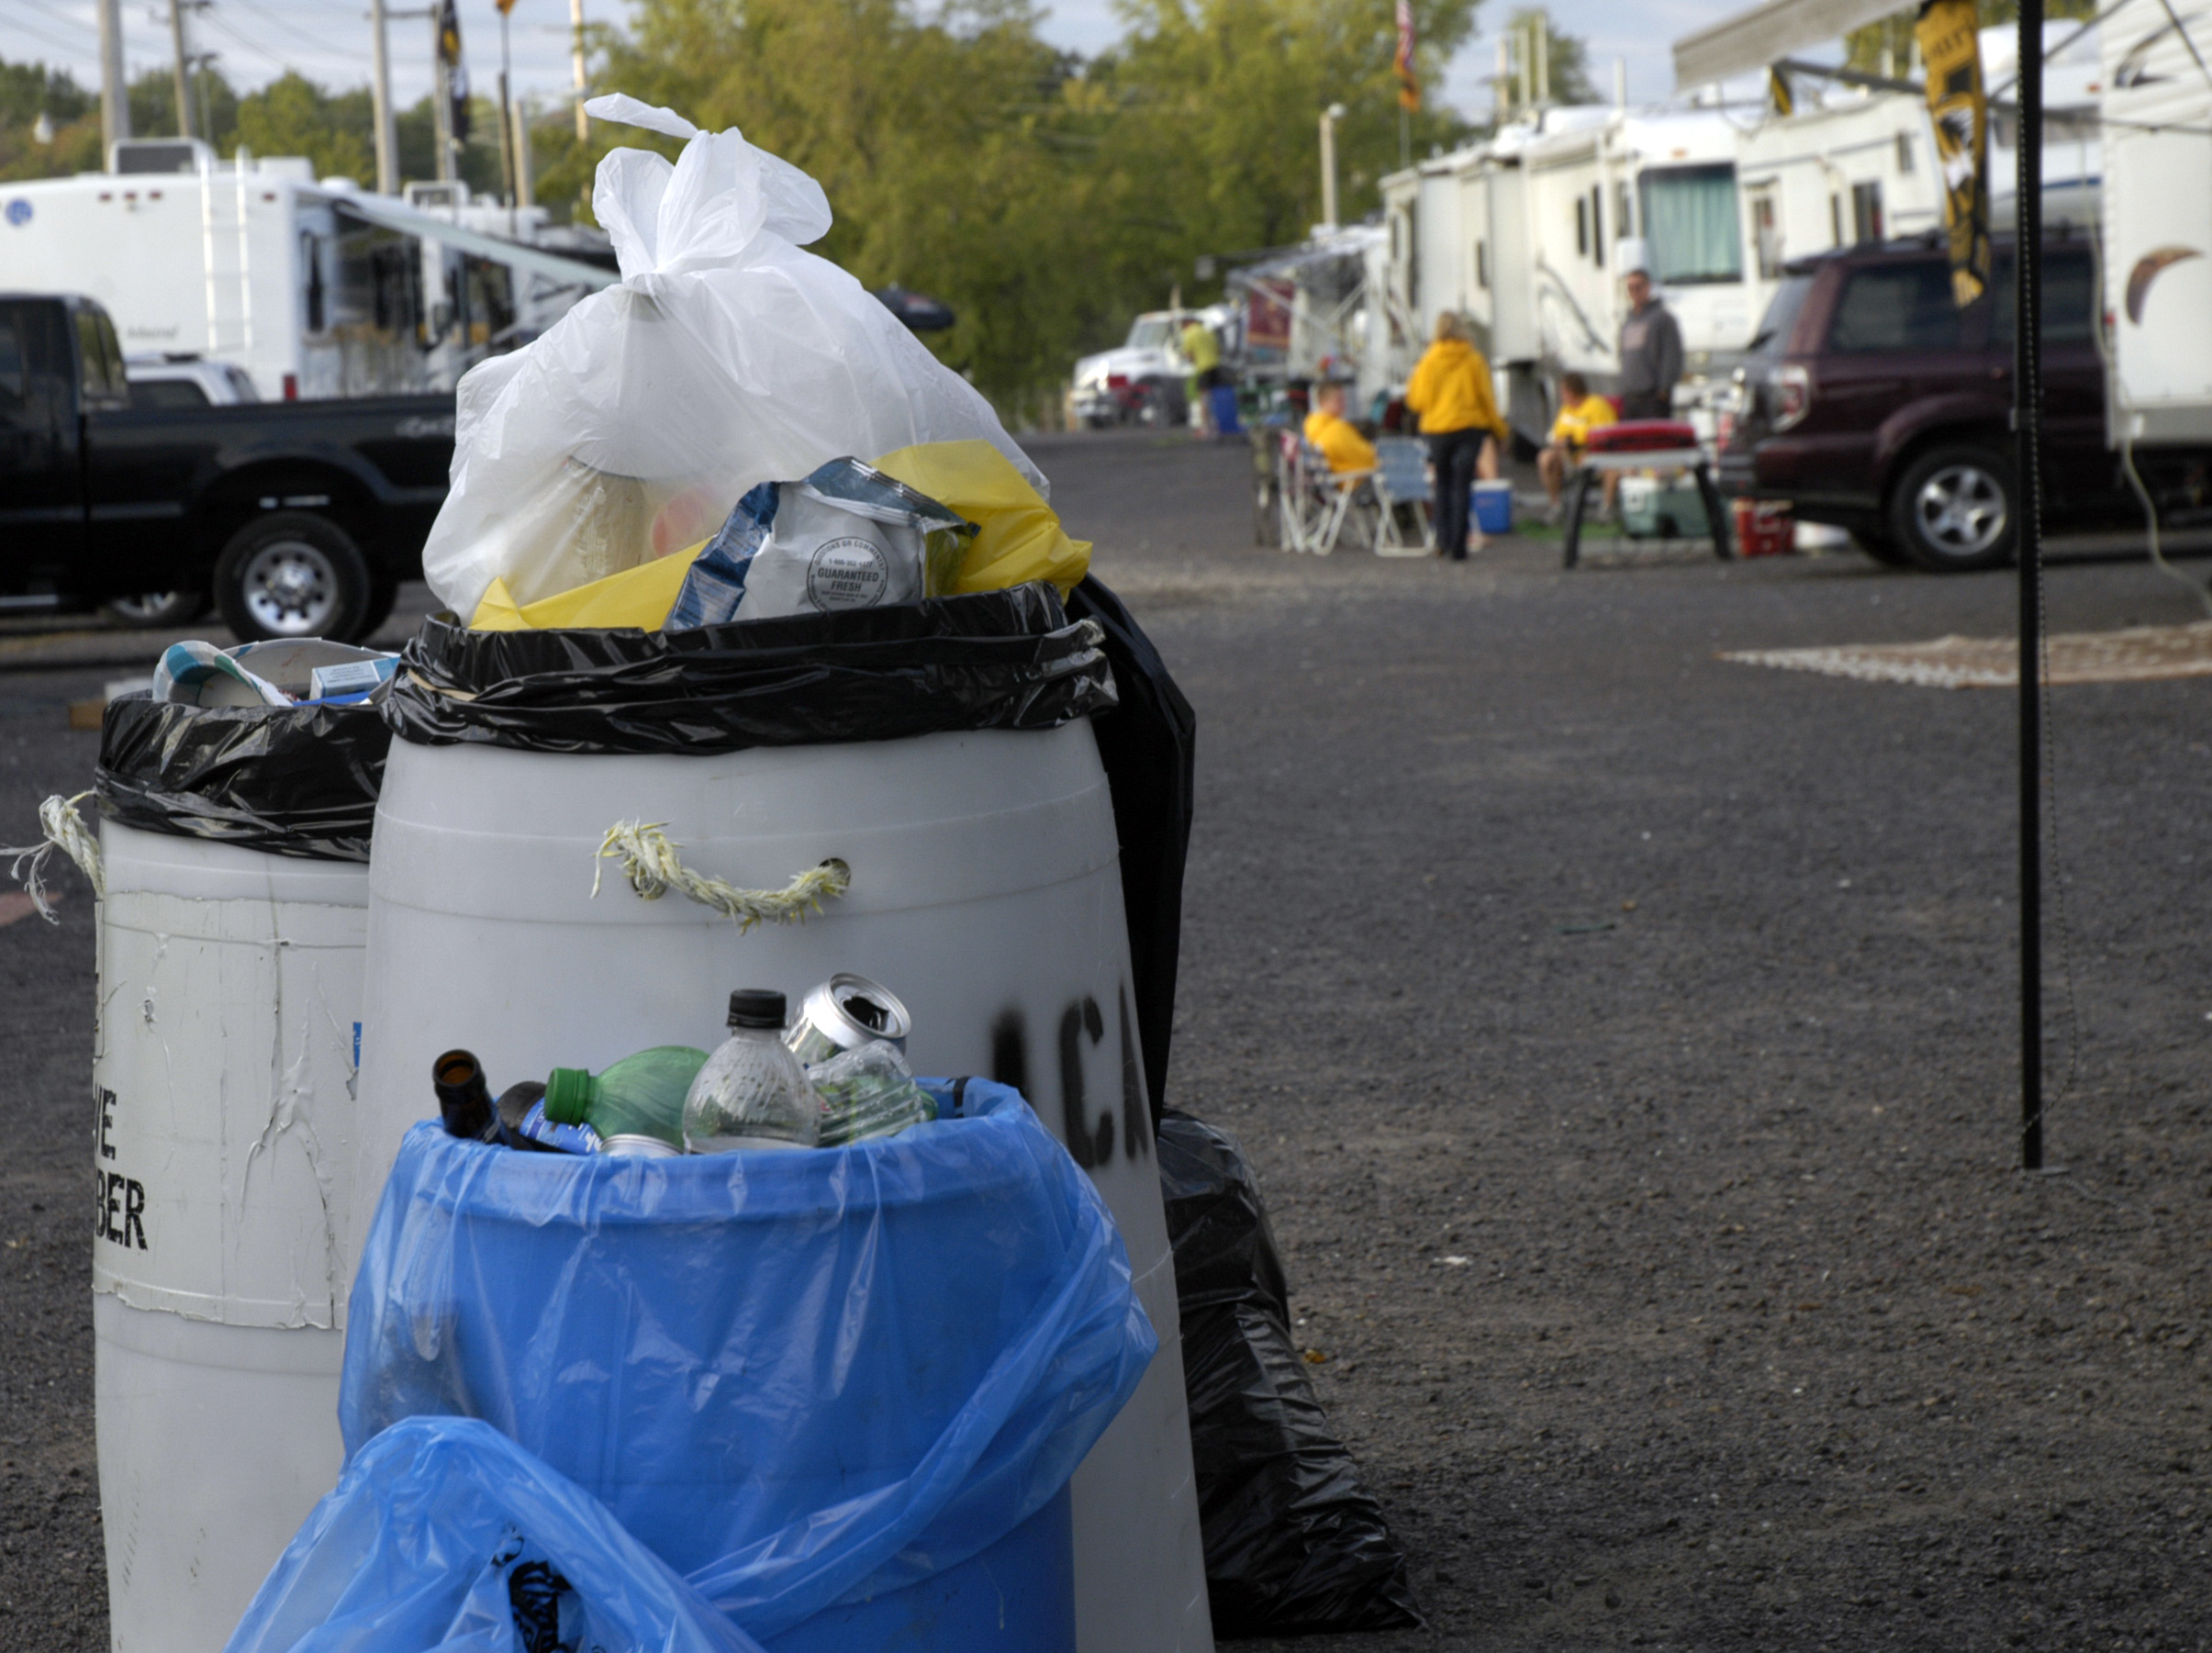 MU hands out blue bags to tailgaters to encourage recycling of metal, glass and plastic refuse.